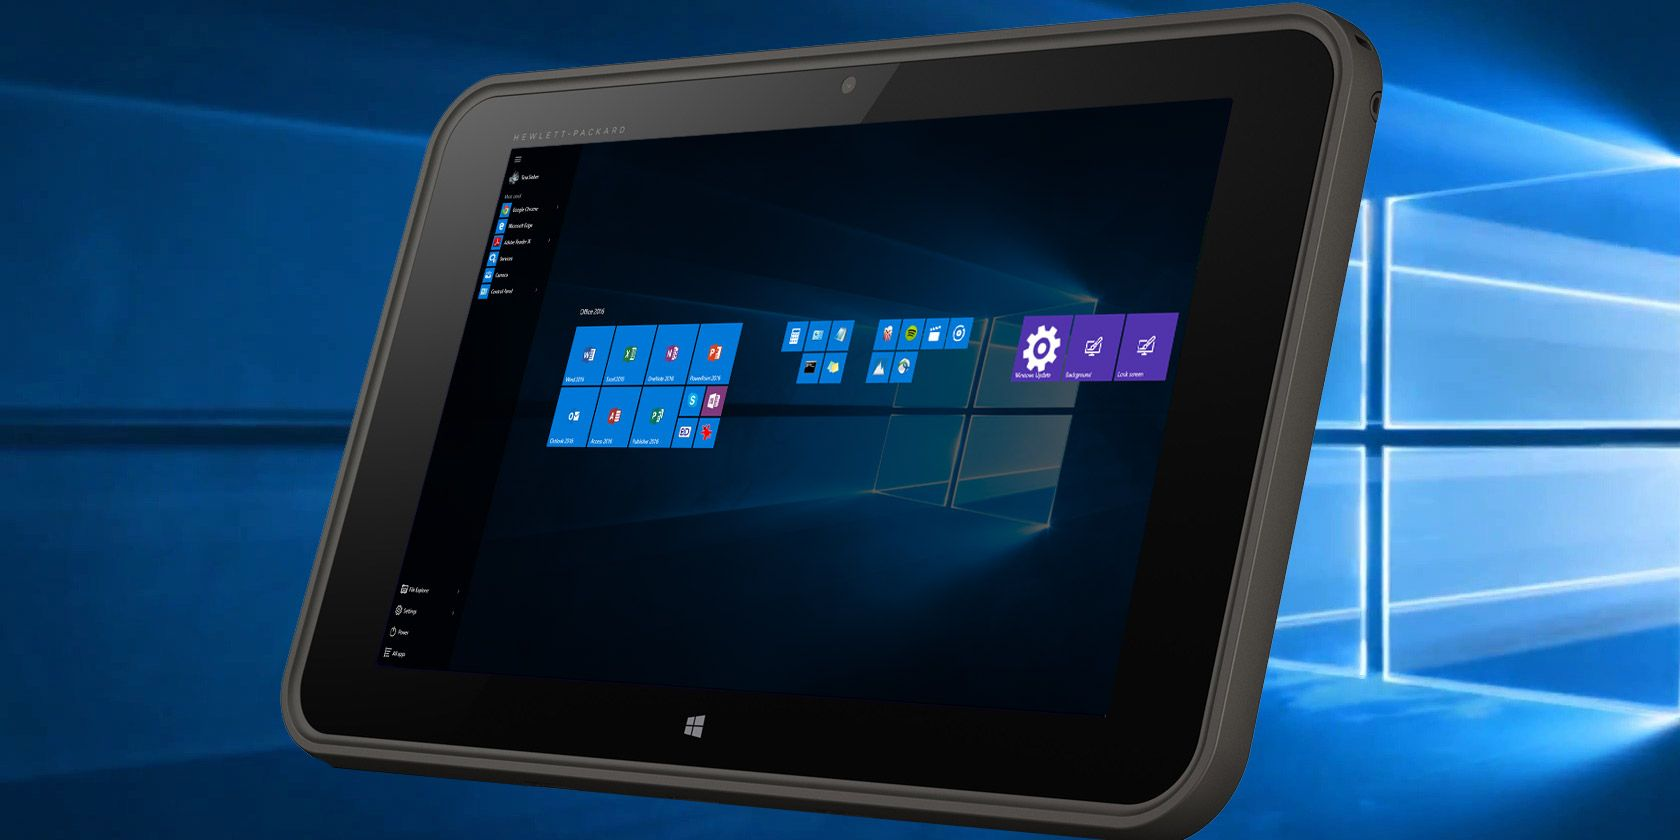 How Well Does Windows 10 Work on a Tiny Tablet?   MakeUseOf